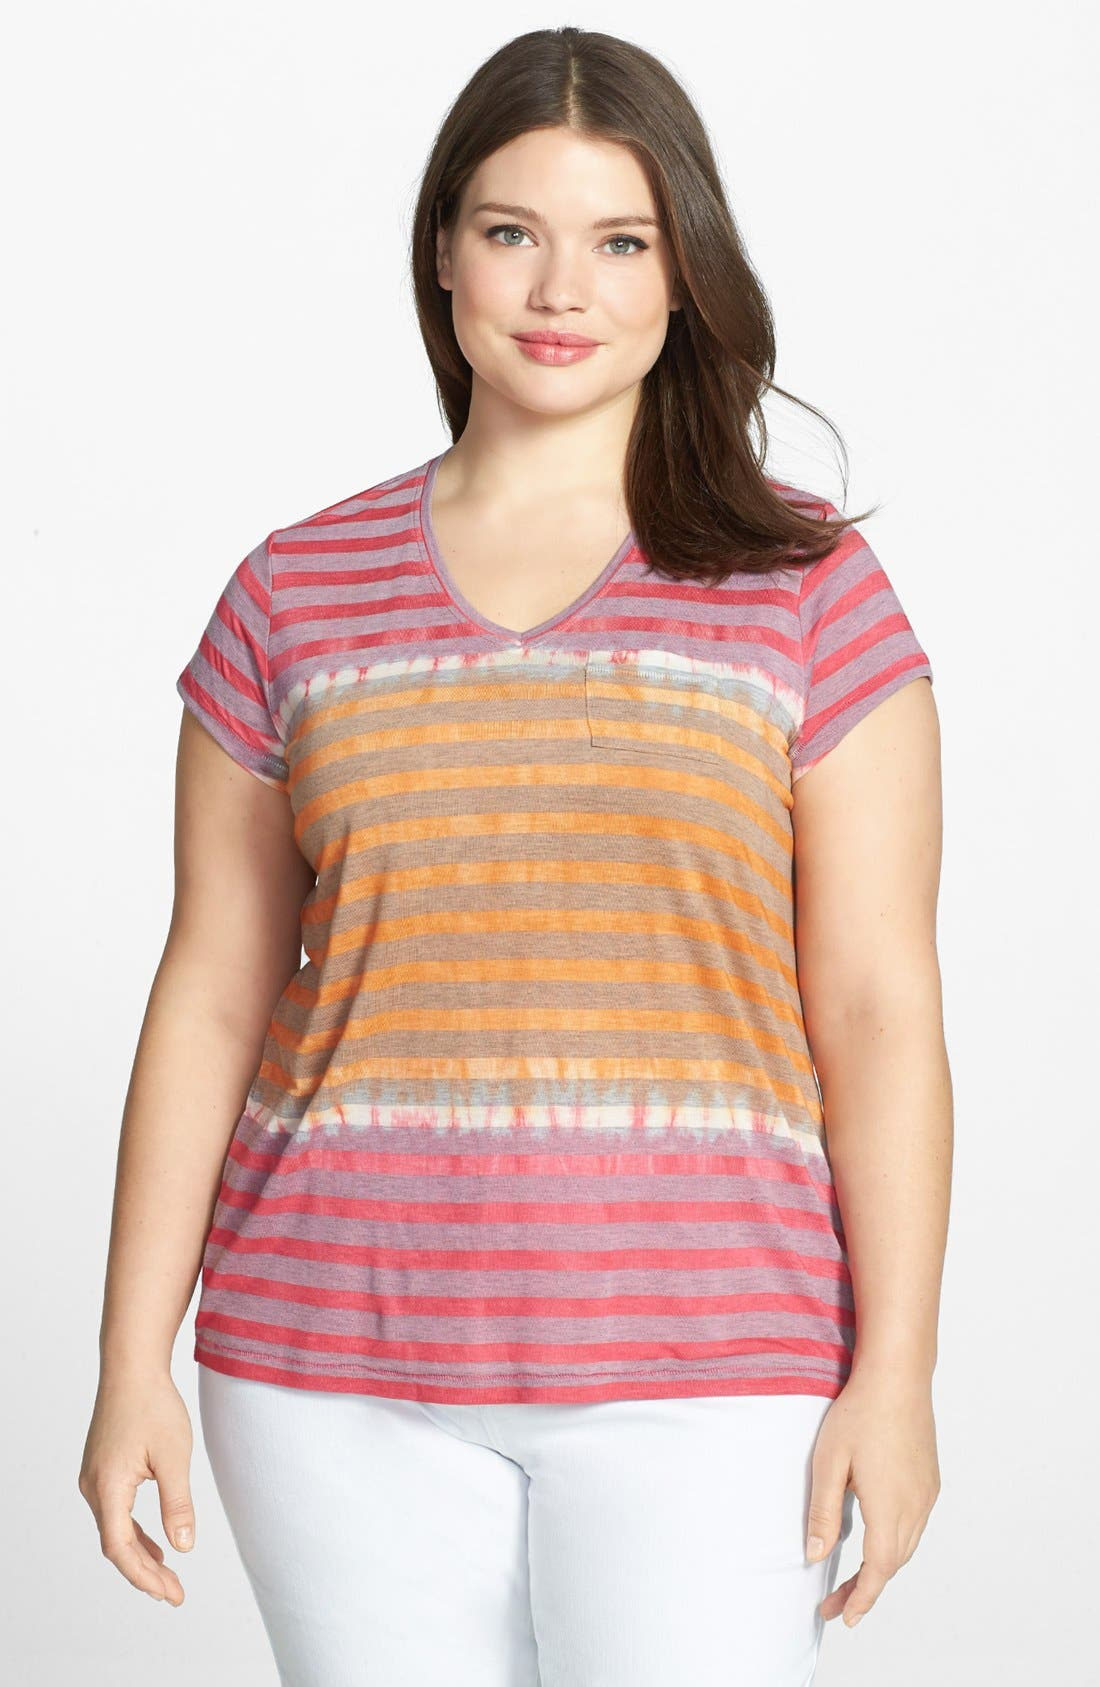 Alternate Image 1 Selected - Two by Vince Camuto Stripe V-Neck Tee (Plus Size)